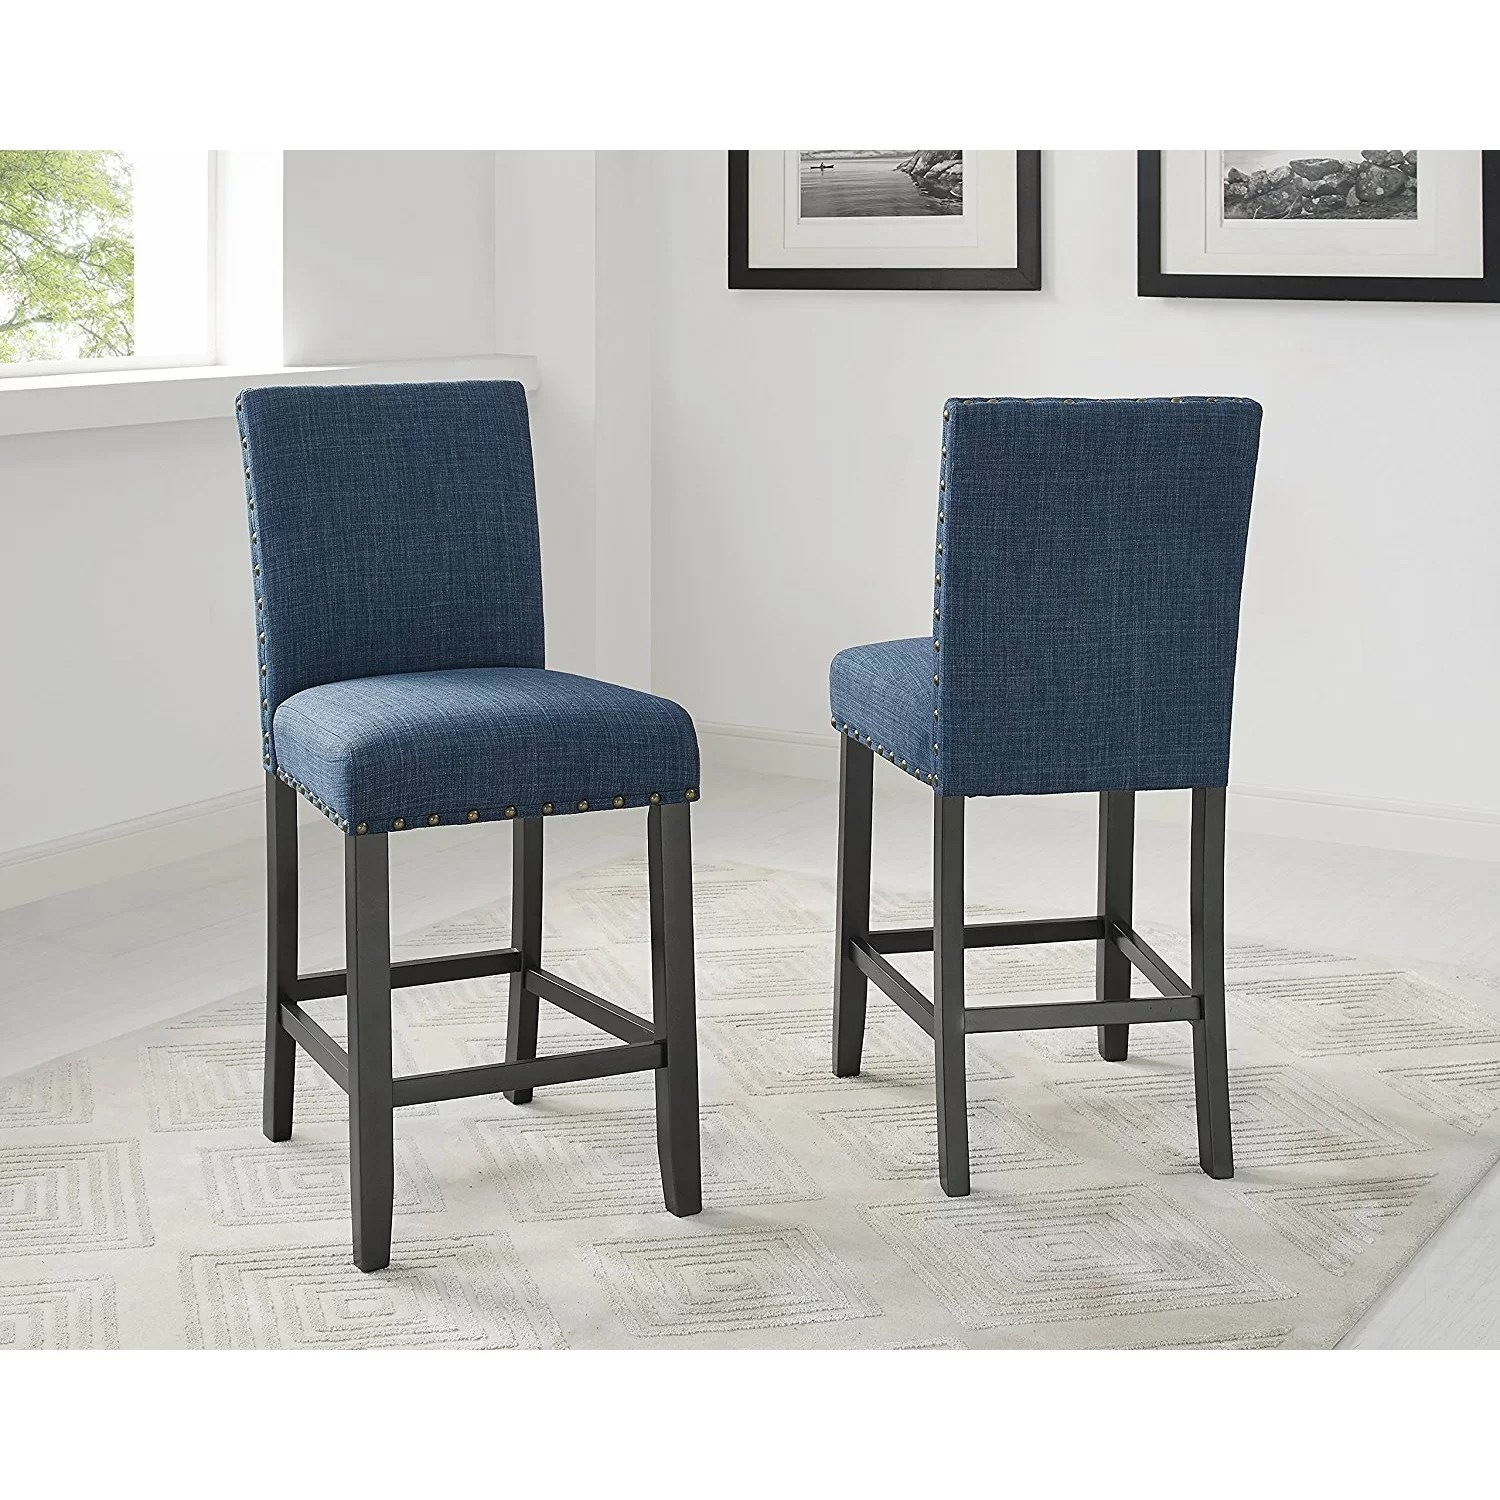 Bar Height Dining Chairs Brayden Studio Raquel Wood Counter Height 5 Piece Dining